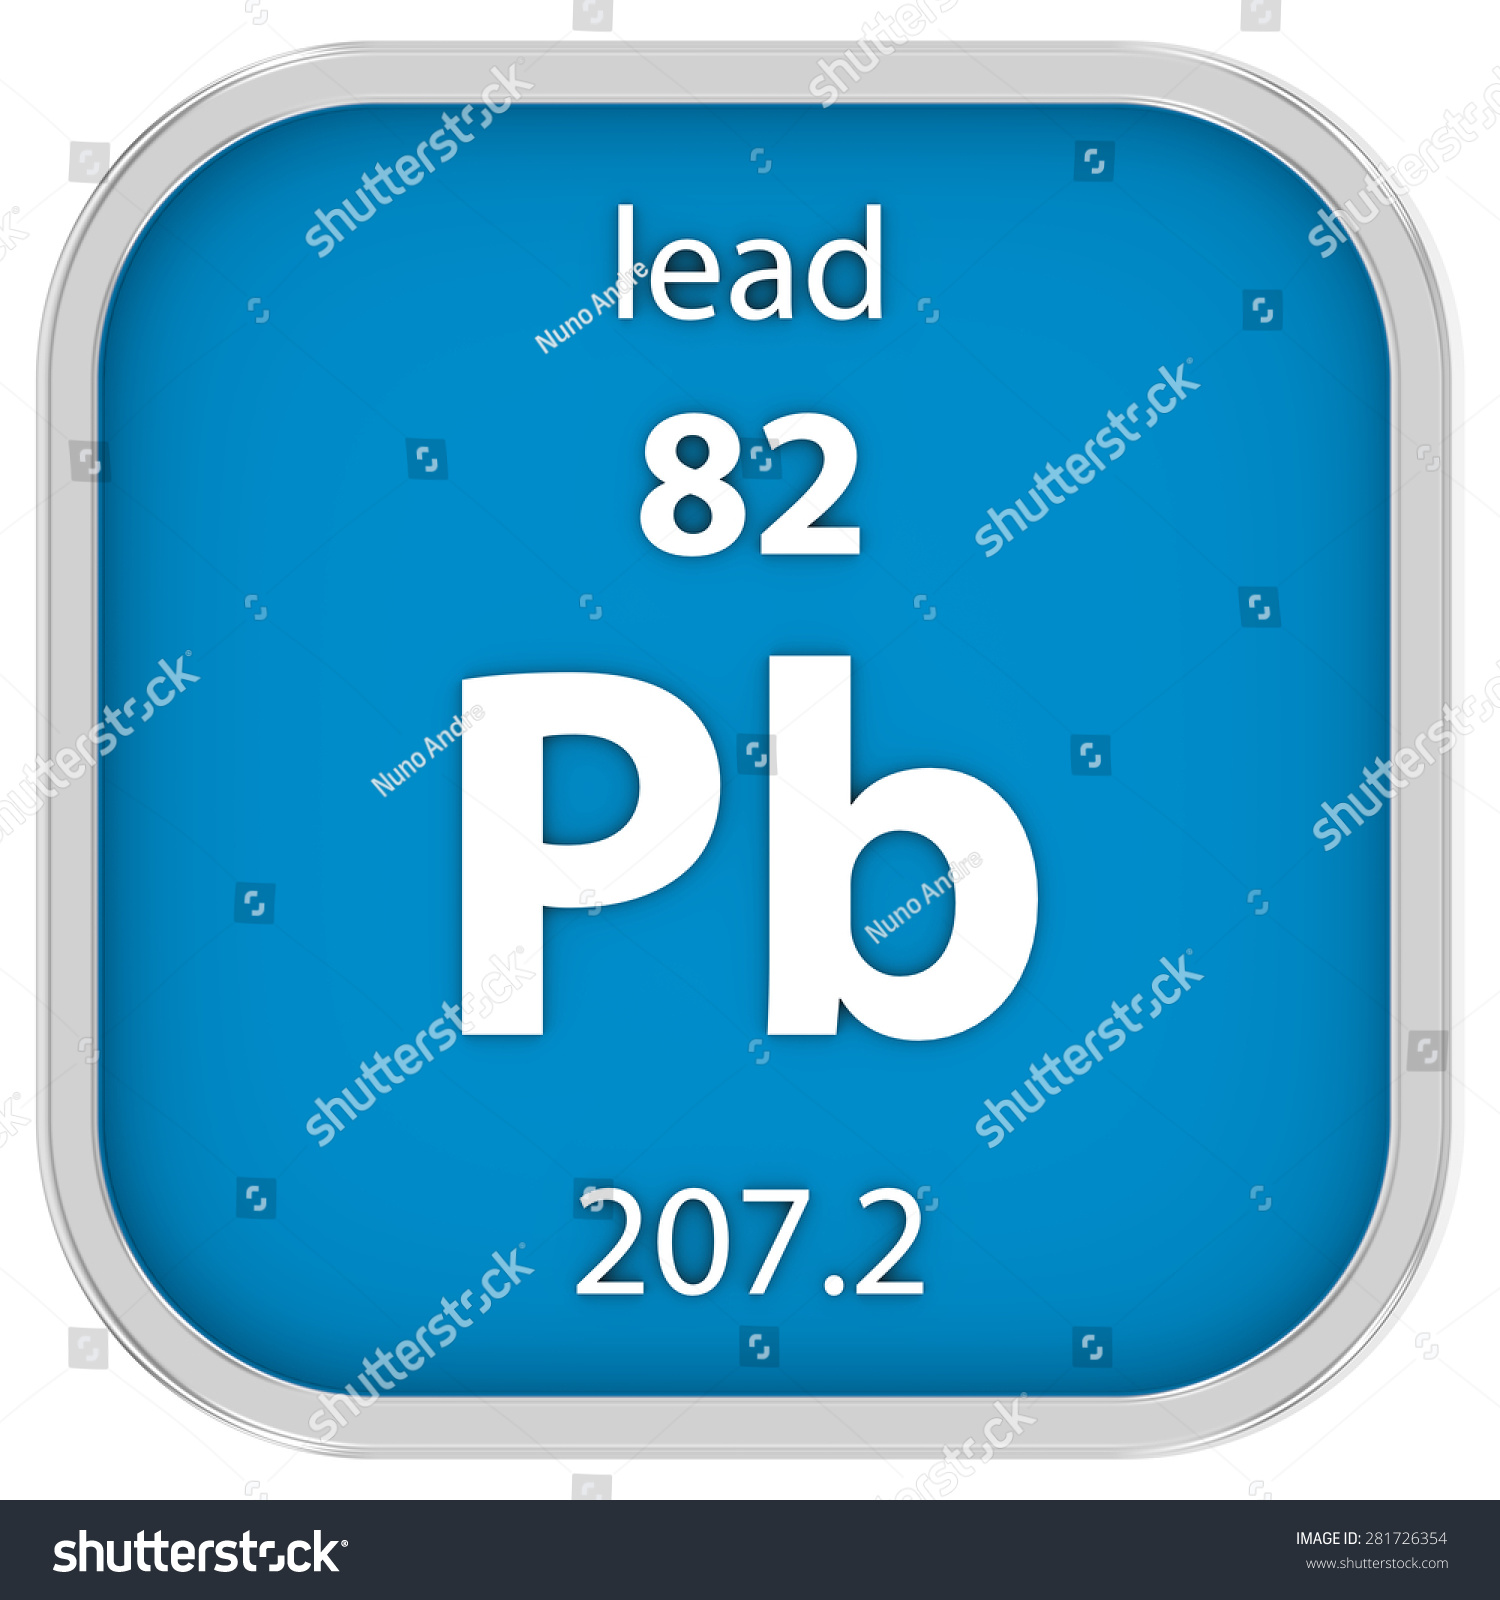 Lead Material On Periodic Table Part Stock Illustration 281726354 ...